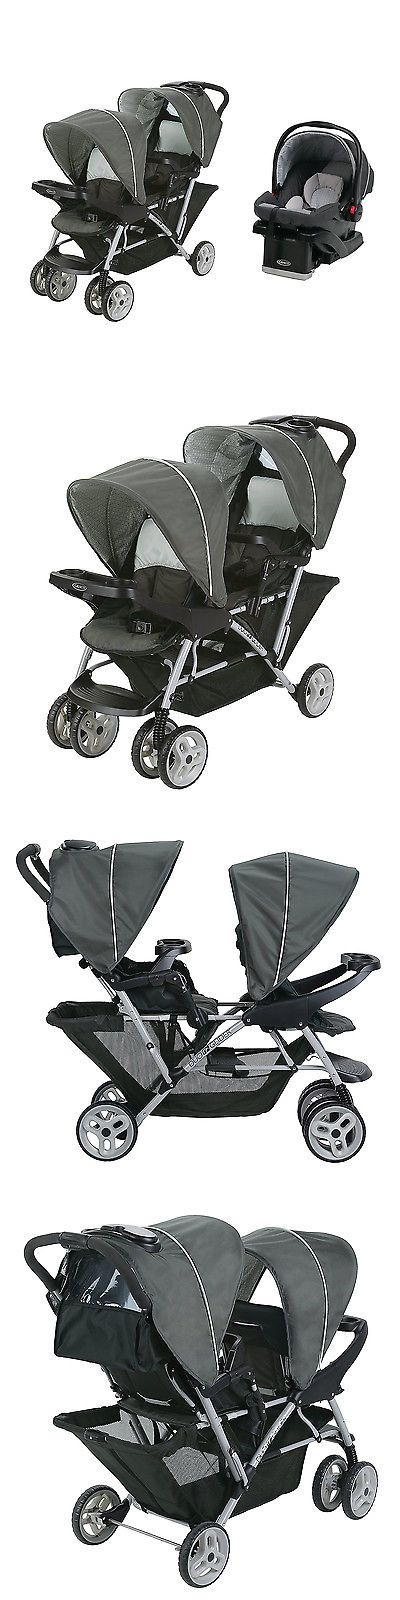 Baby: Graco Duoglider Click Double Stroller + Infant Car Seat Travel System | Glacier BUY IT NOW ONLY: $224.99